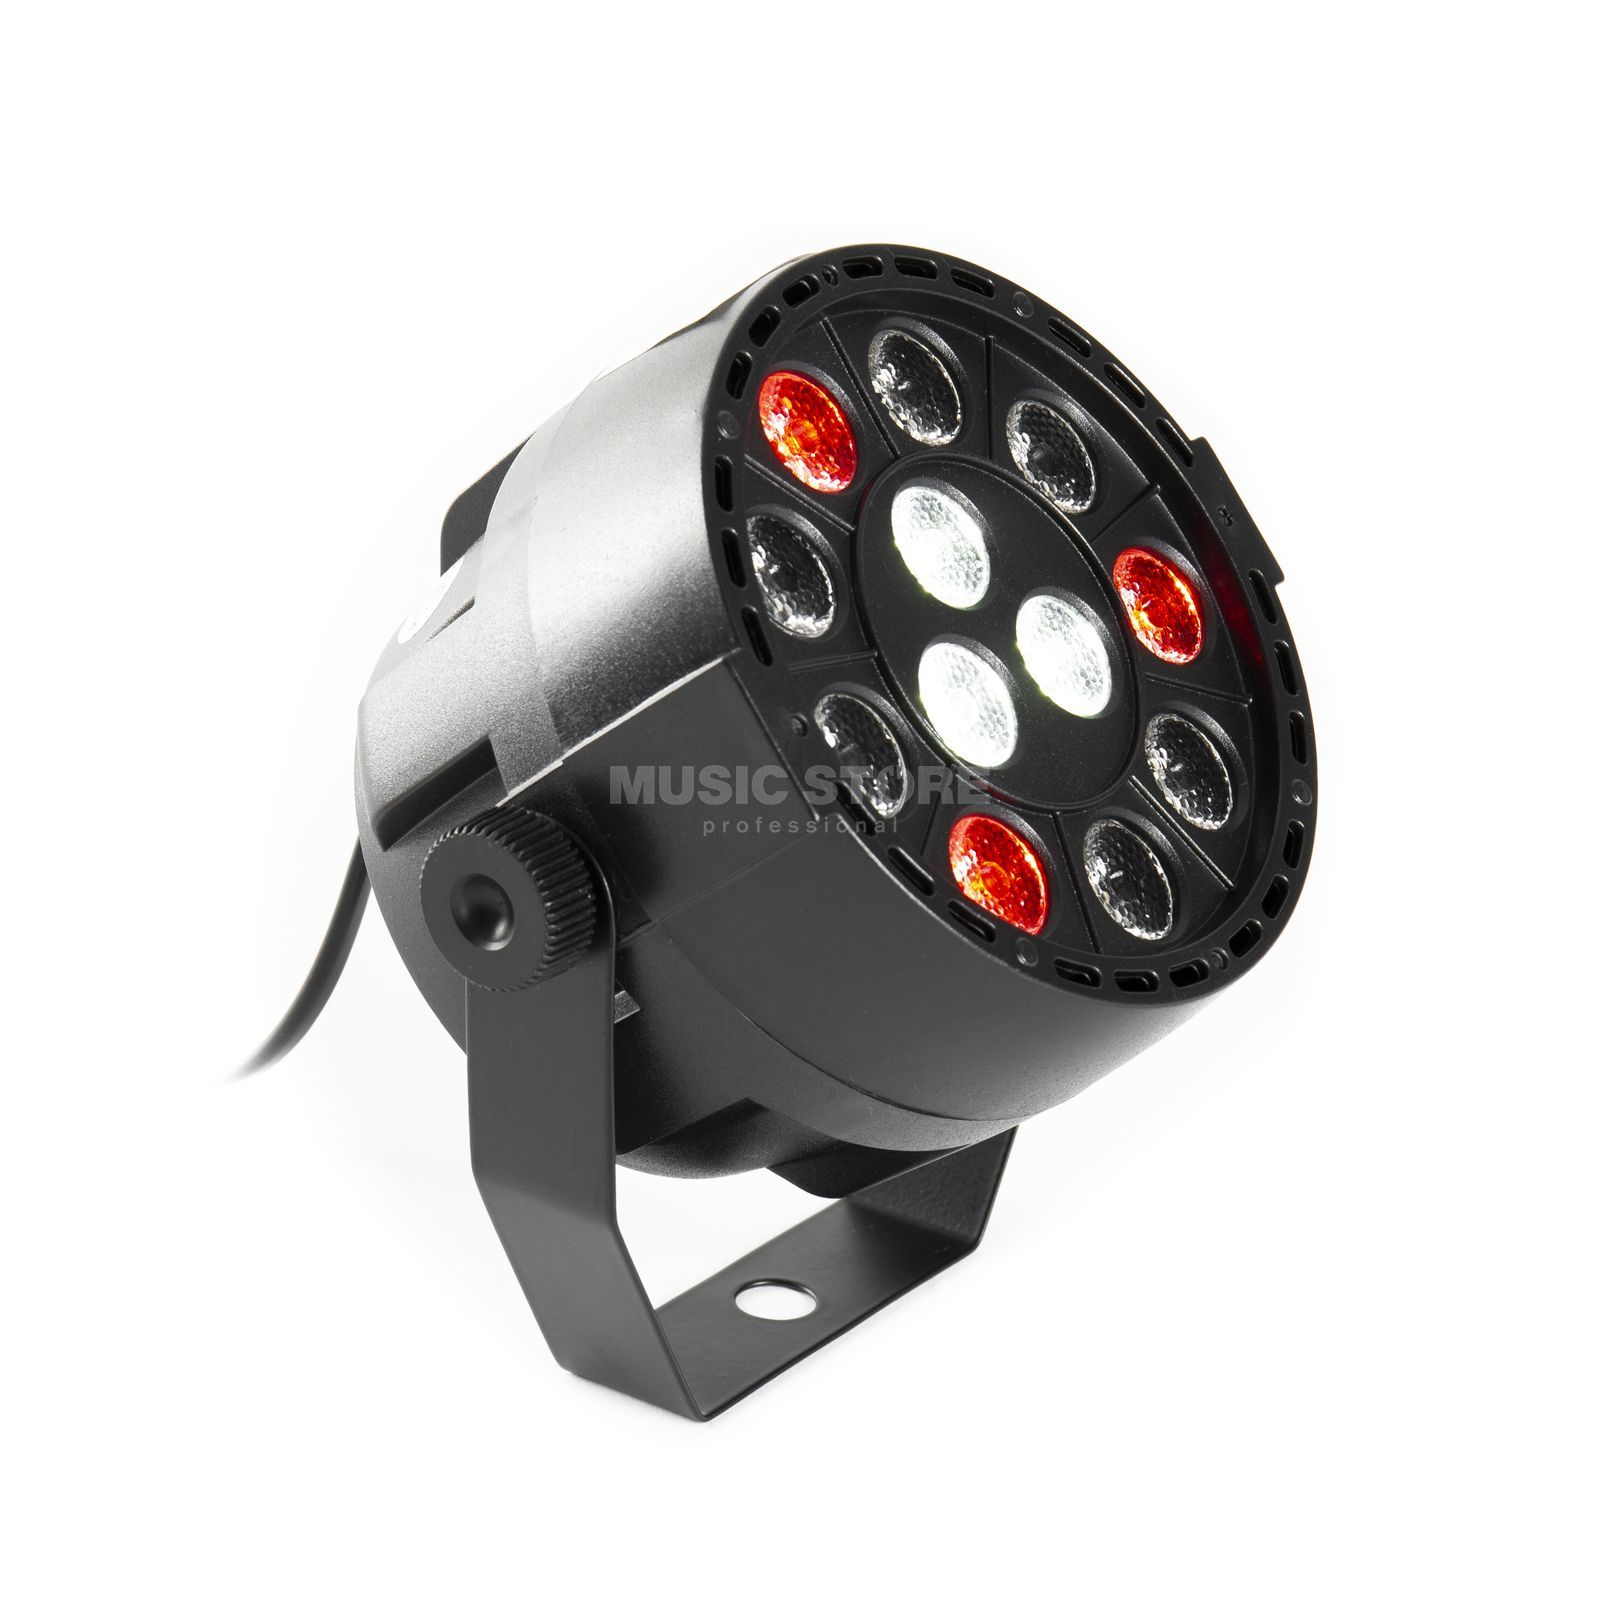 lightmaXX LED NANO PAR black 12×1W LED RGBW Product Image